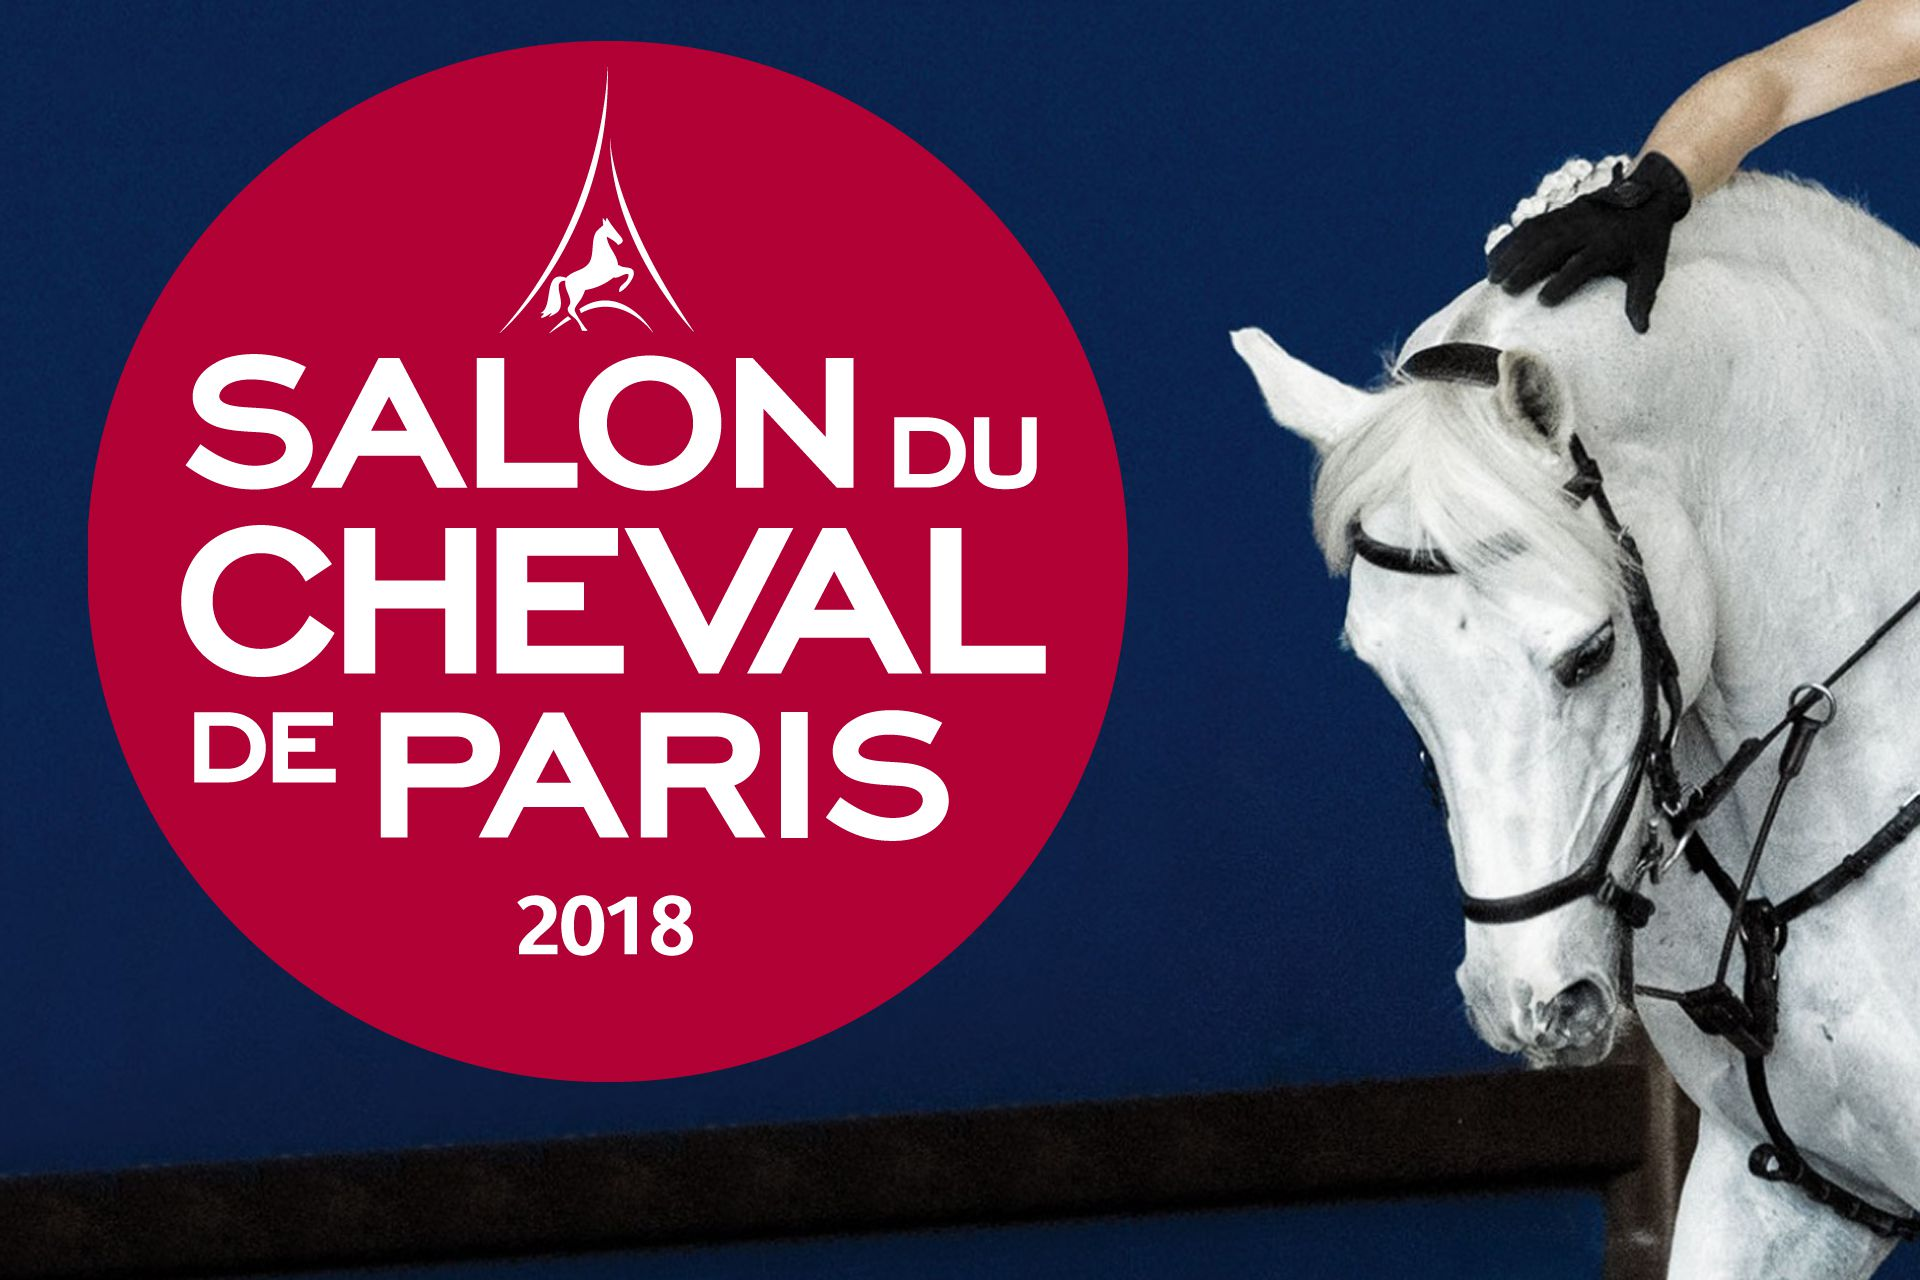 La sellerie Gaston Mercier au Salon du Cheval de Paris 2018